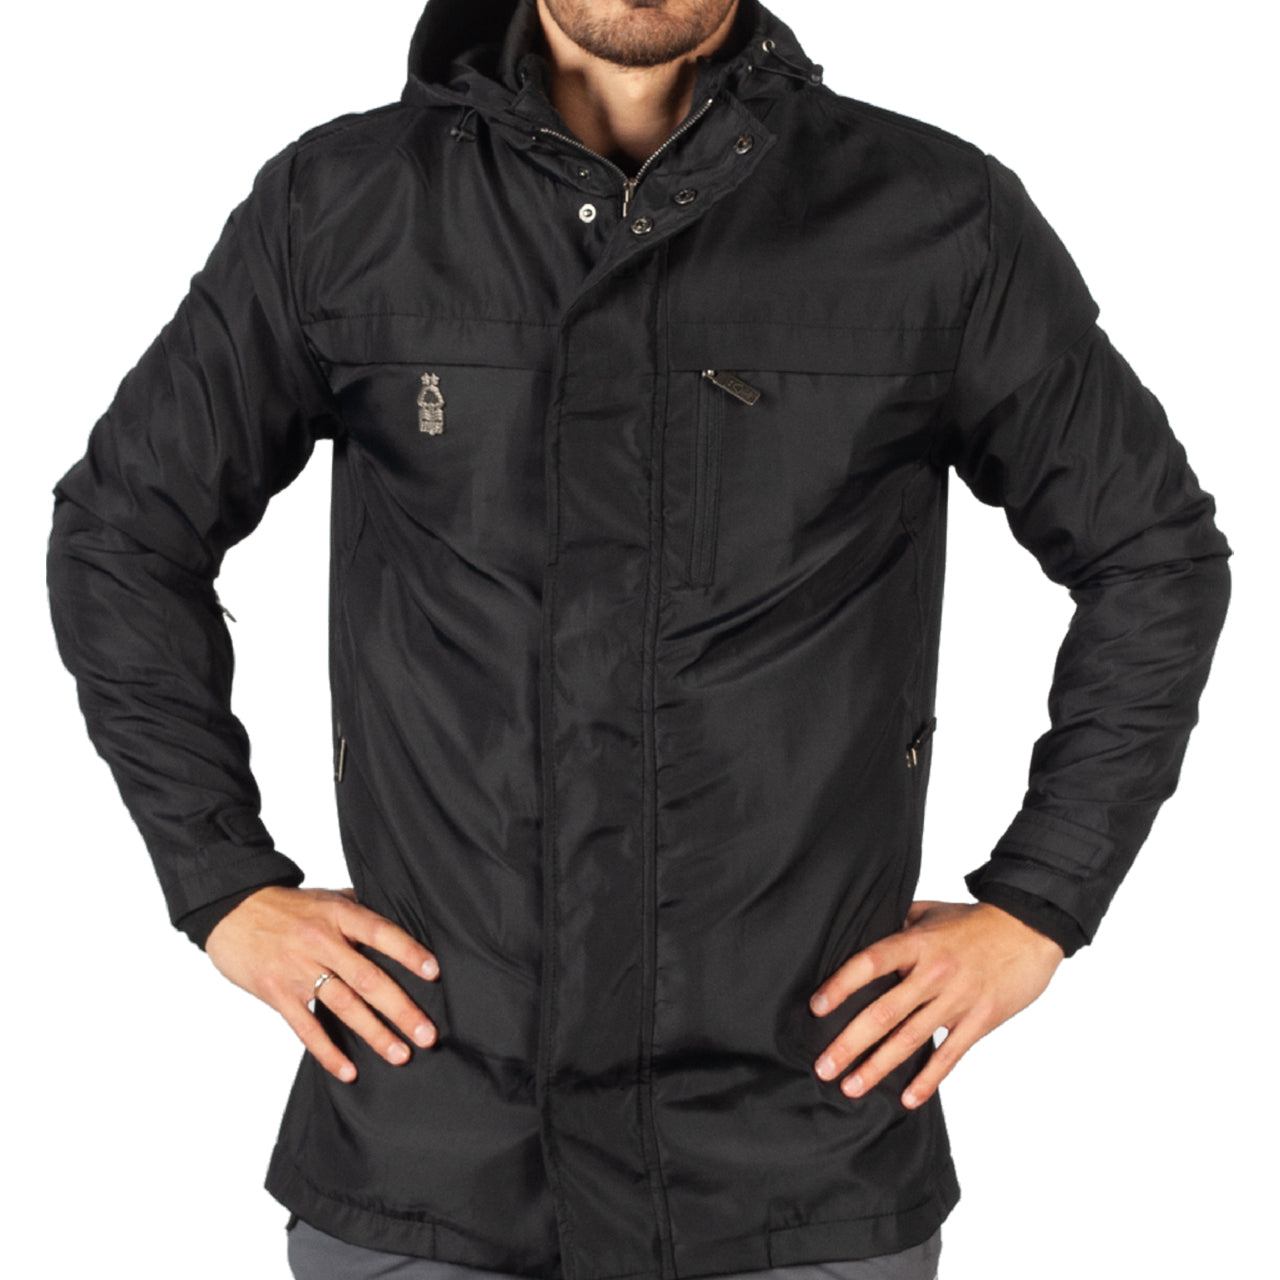 NFFC Mens Black 3 in 1 Jacket